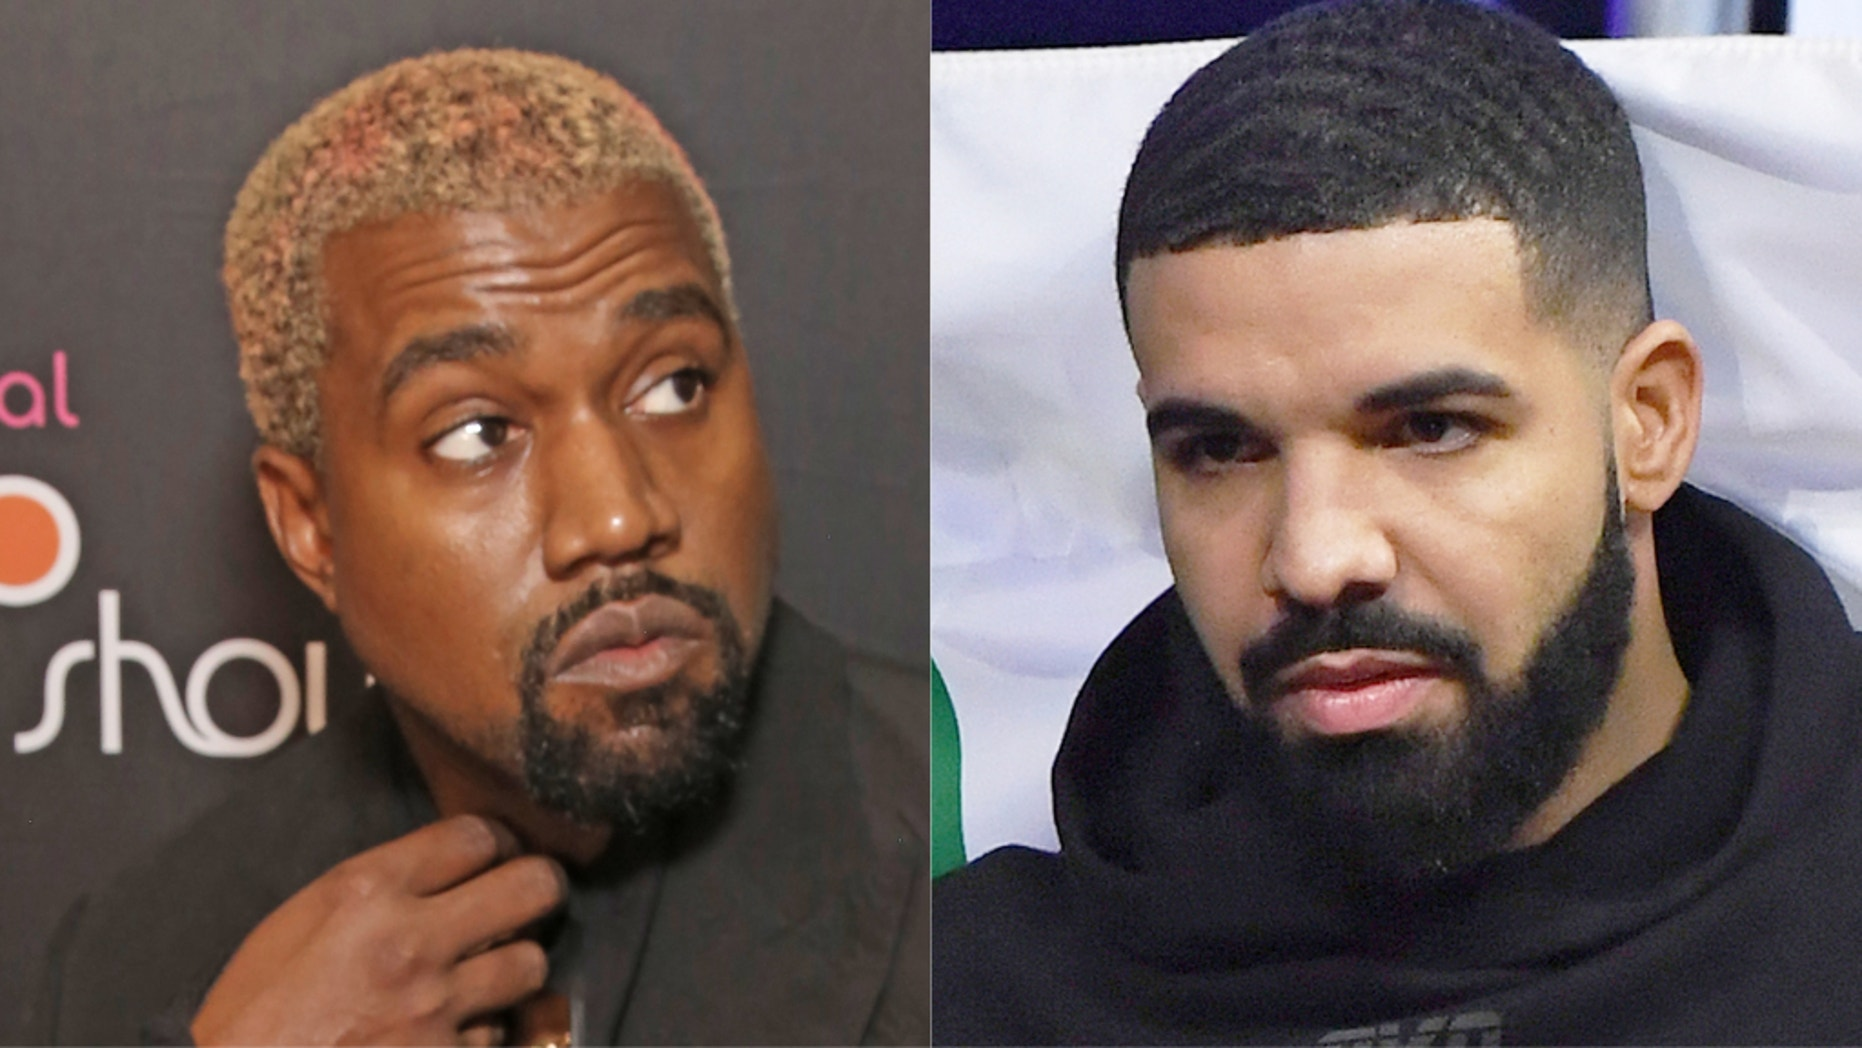 Kanye West and Drake